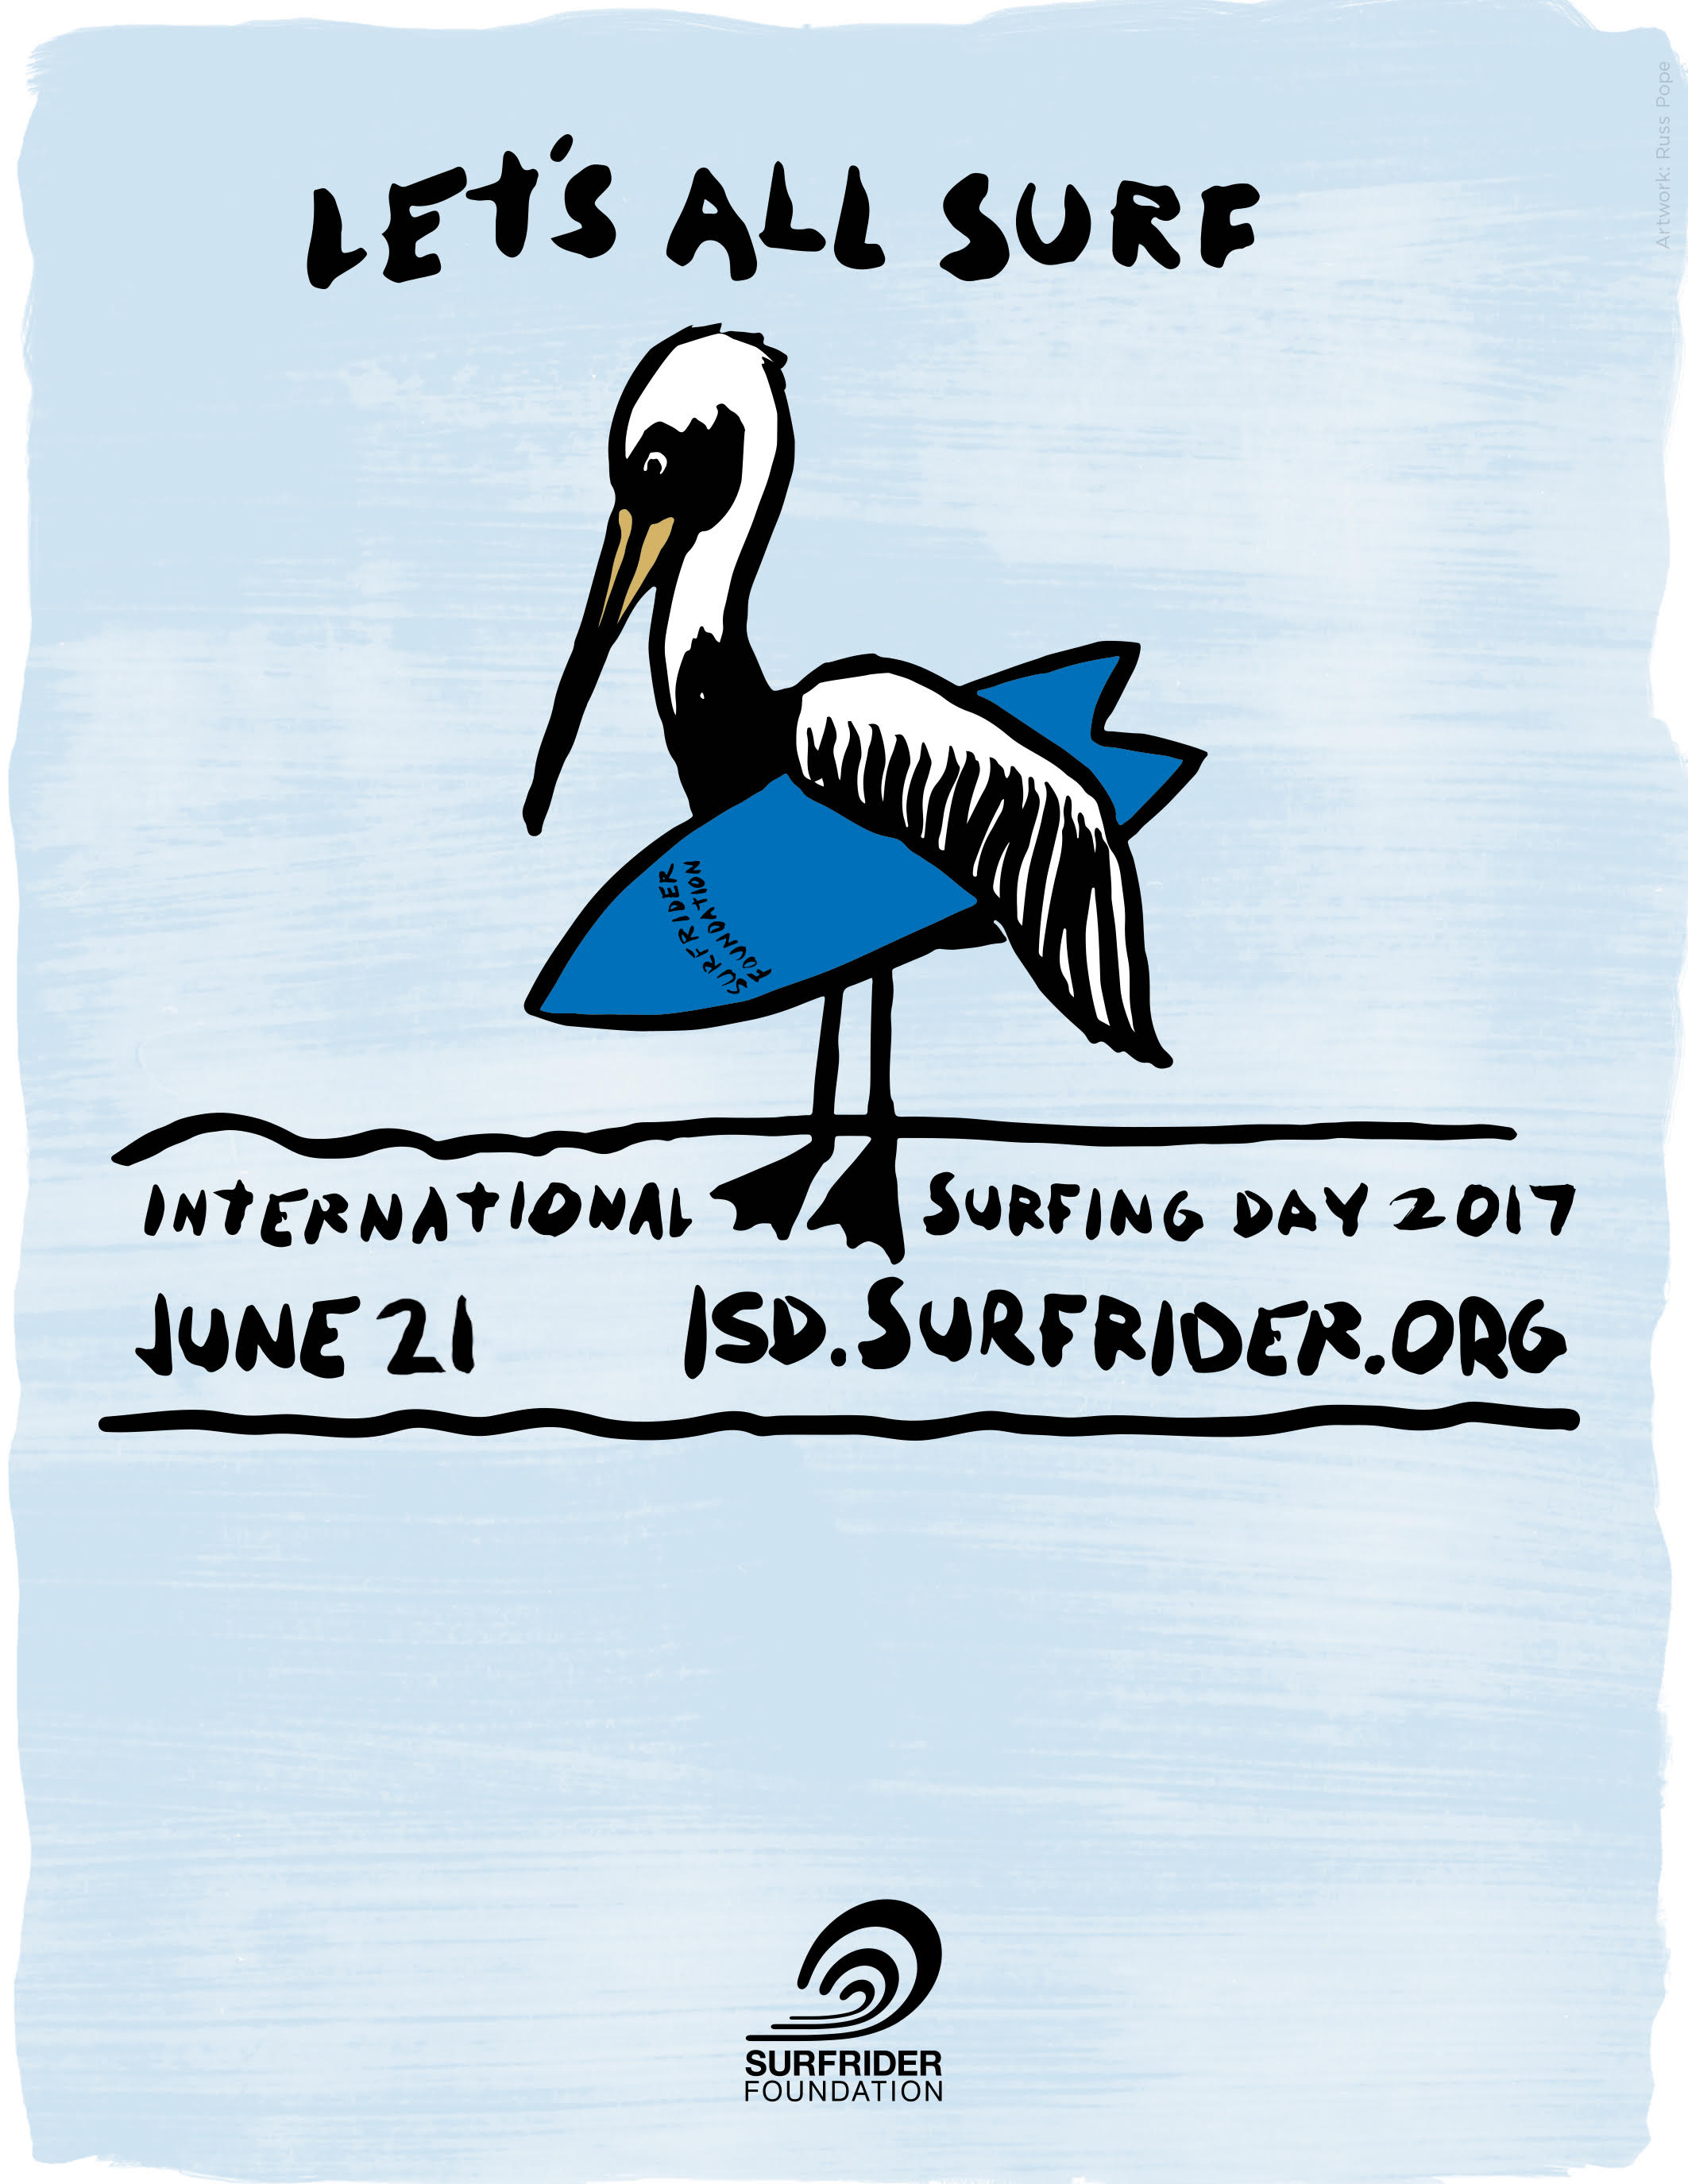 Annual International Surfing Day Celebration Next Week